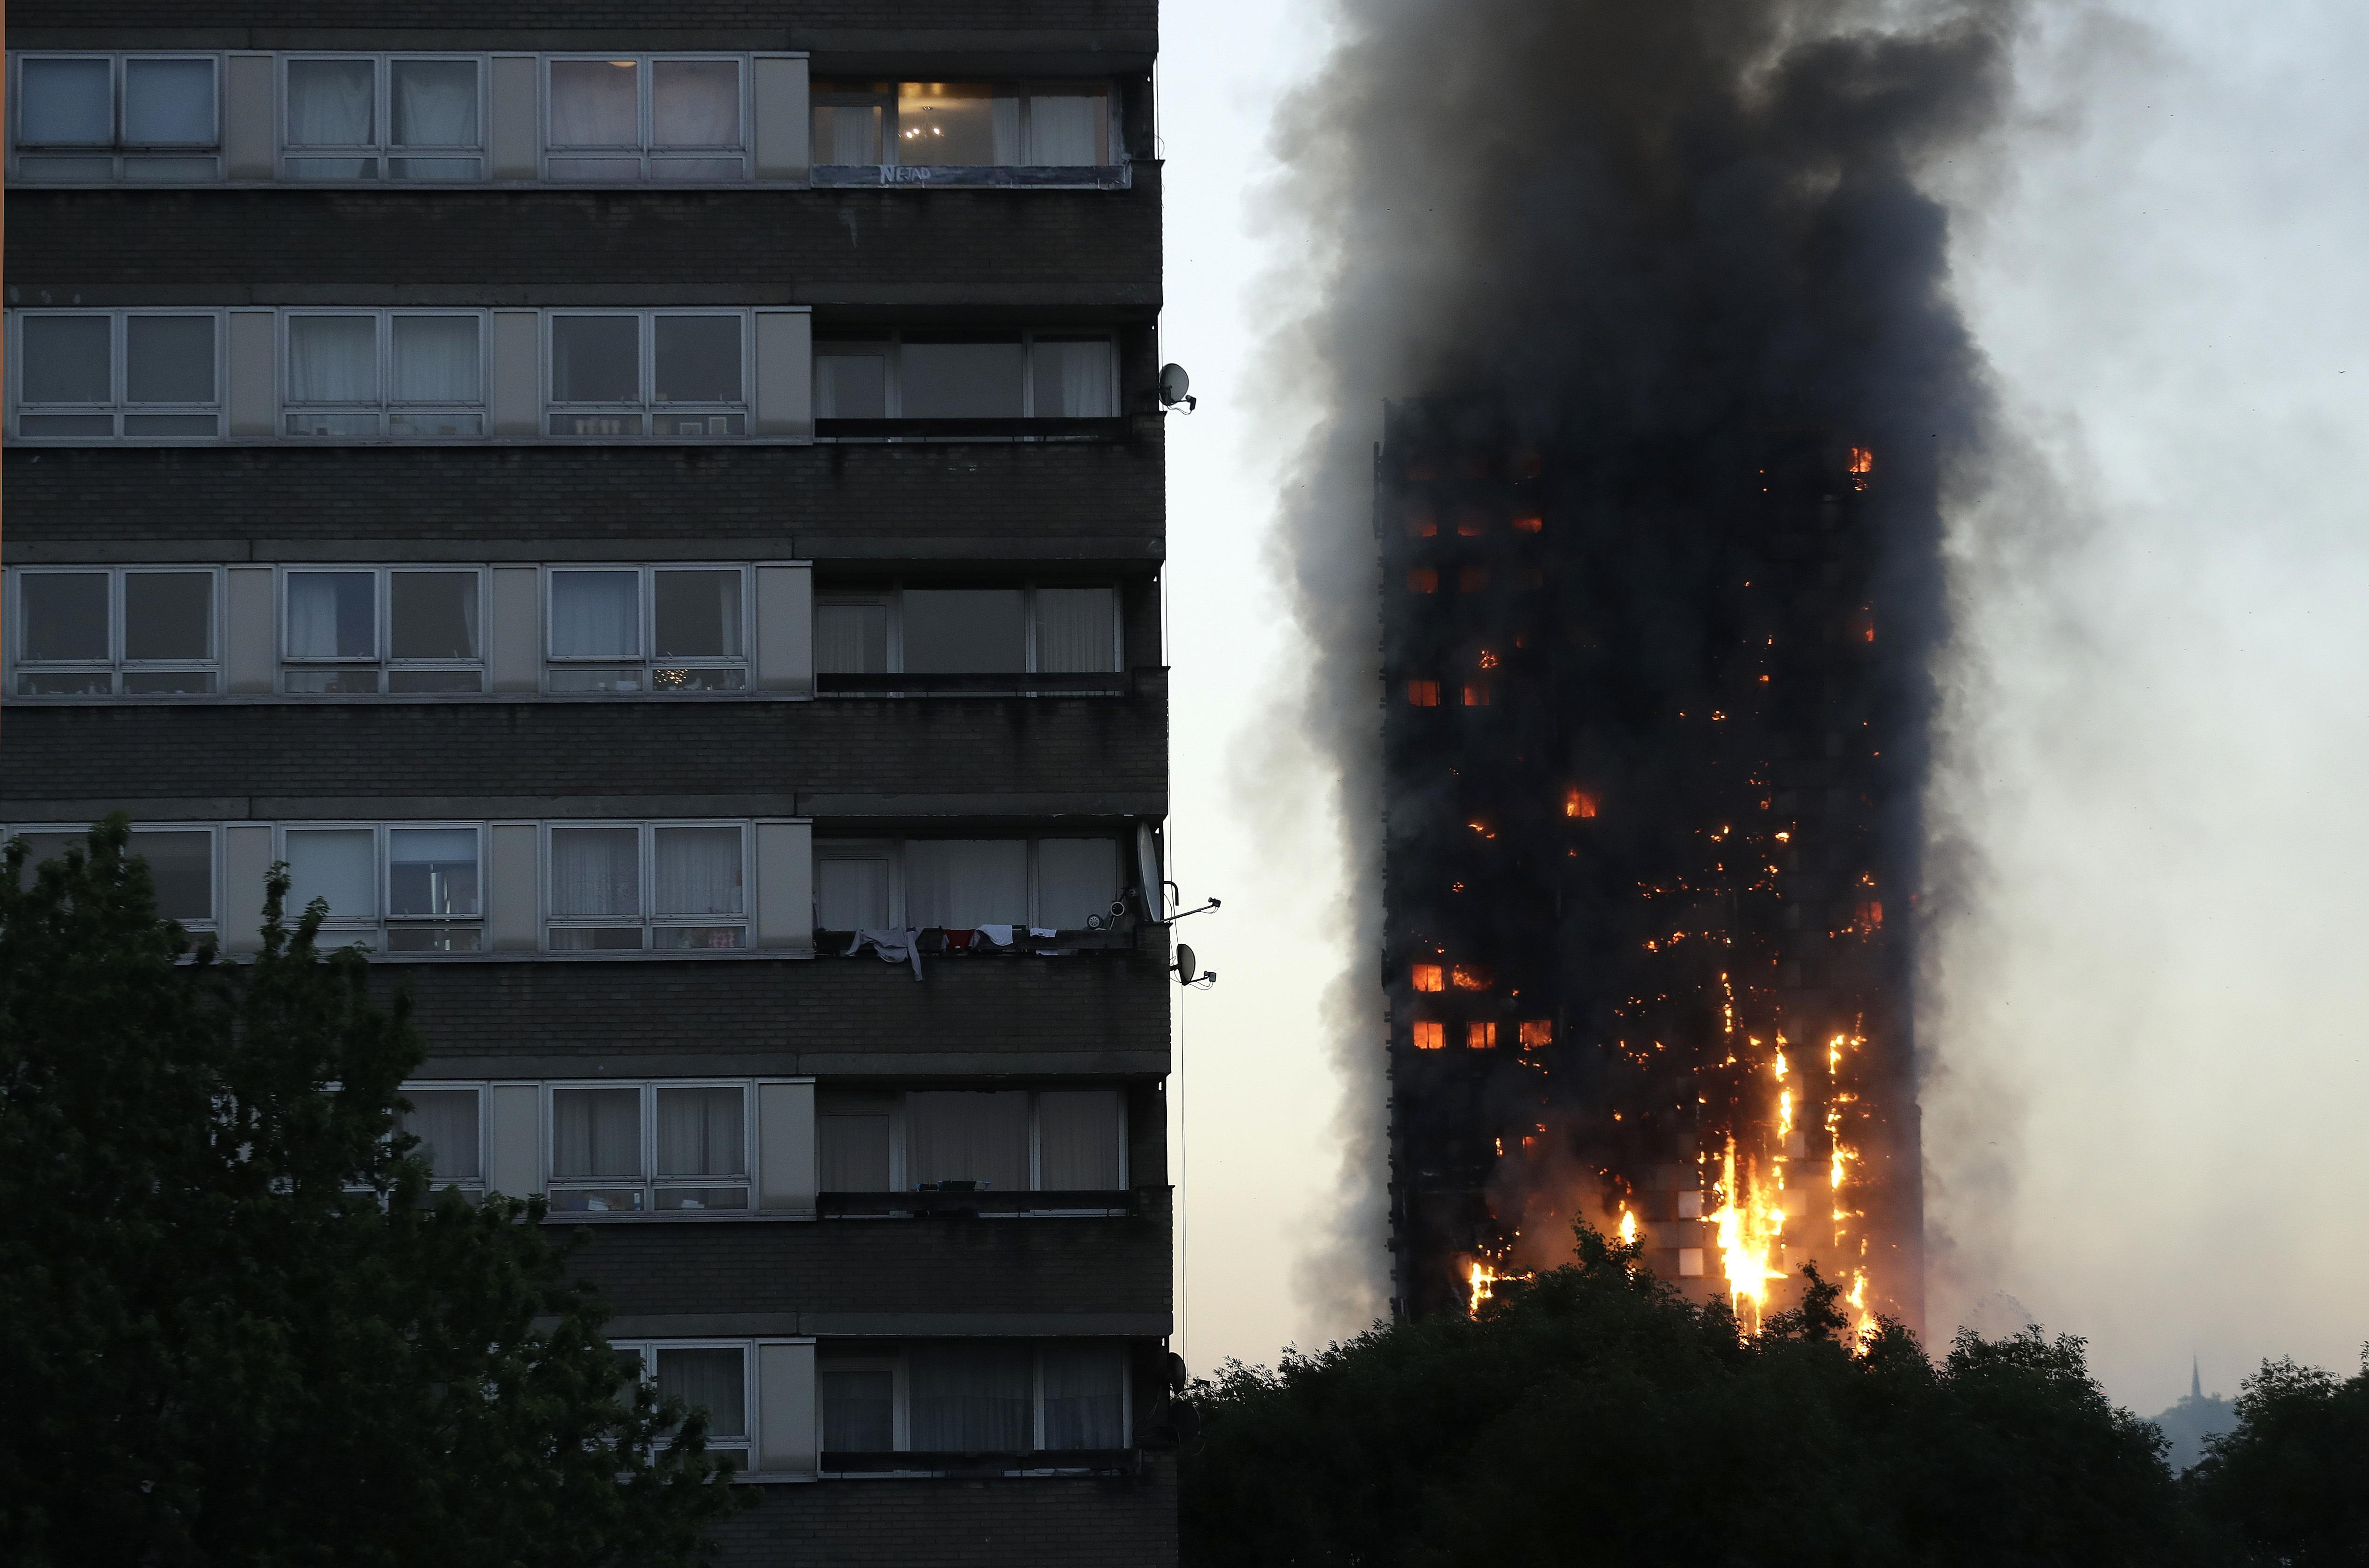 Four alarm fire at new york city high rise injures 24 people two critically fox news - Death Toll Rises To 12 In London Apartment Building Inferno Washington Times